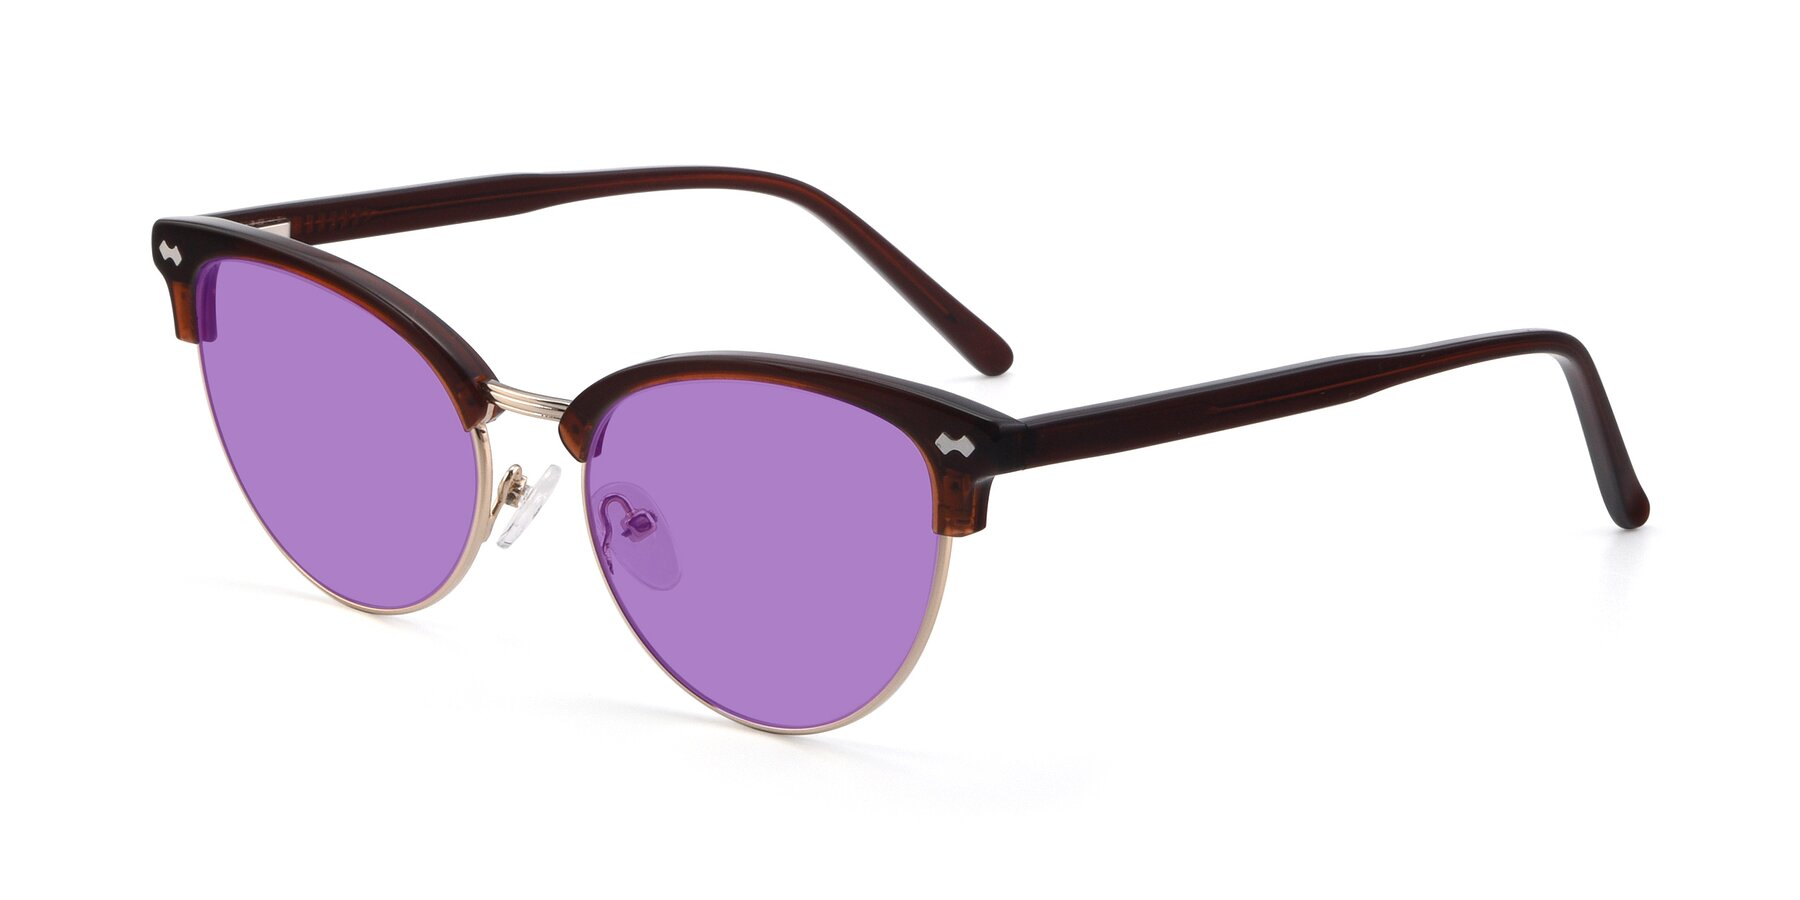 Angle of 17461 in Tortoise-Black with Medium Purple Tinted Lenses